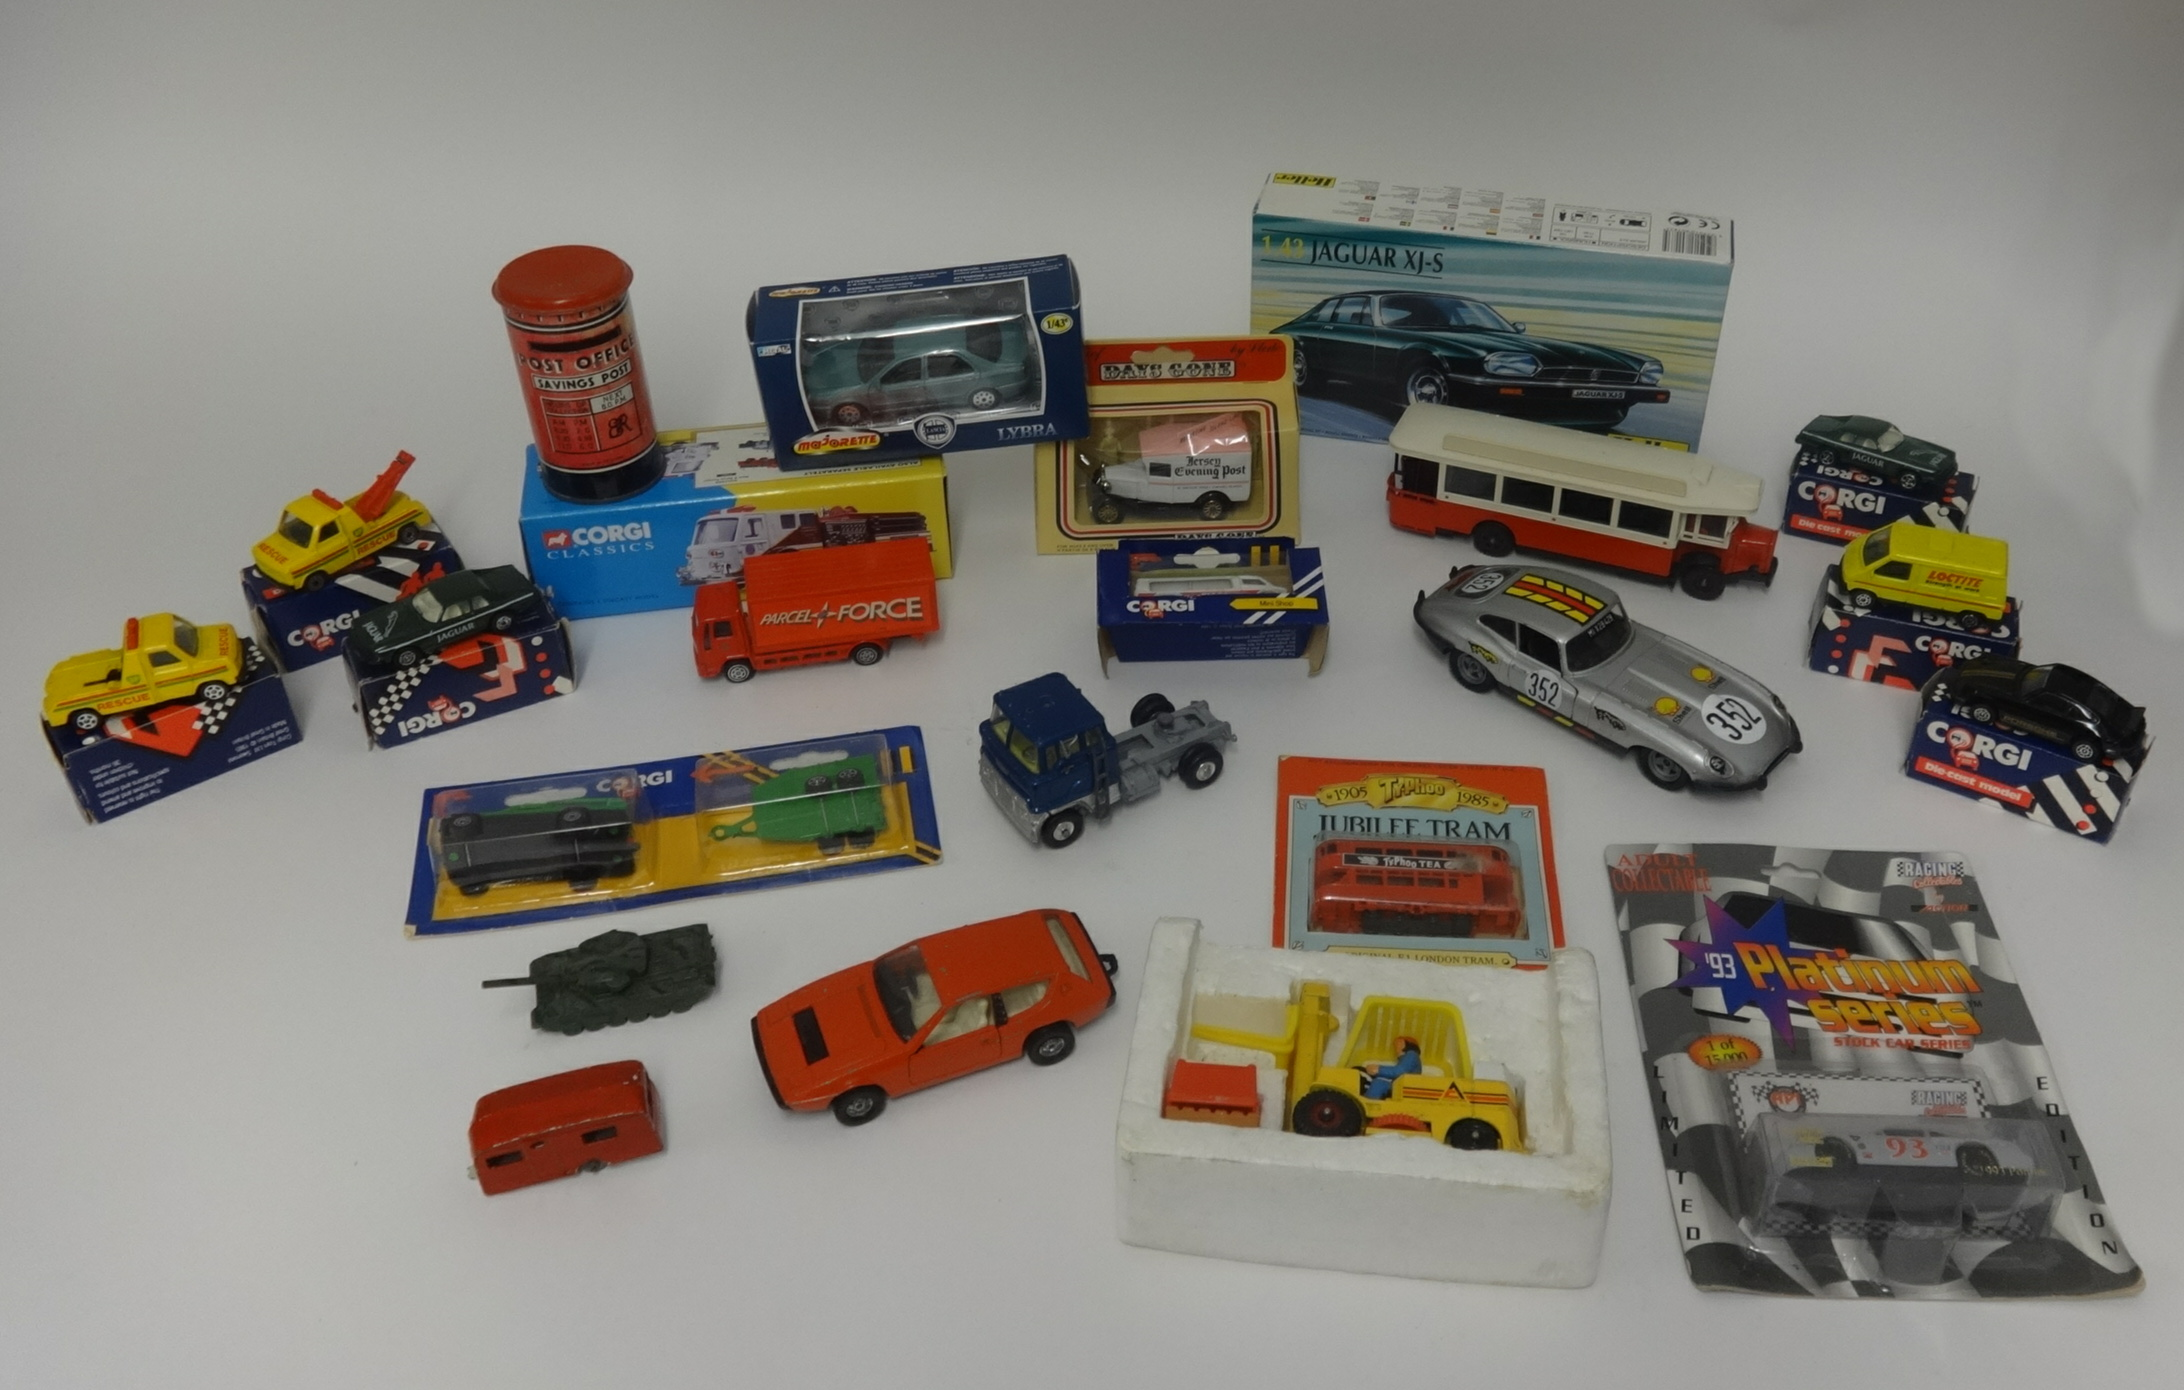 Lot 005 - A tray of various toys, mainly Corgi plus a bag of plastic figures and a Heller Jaguar XJS plastic